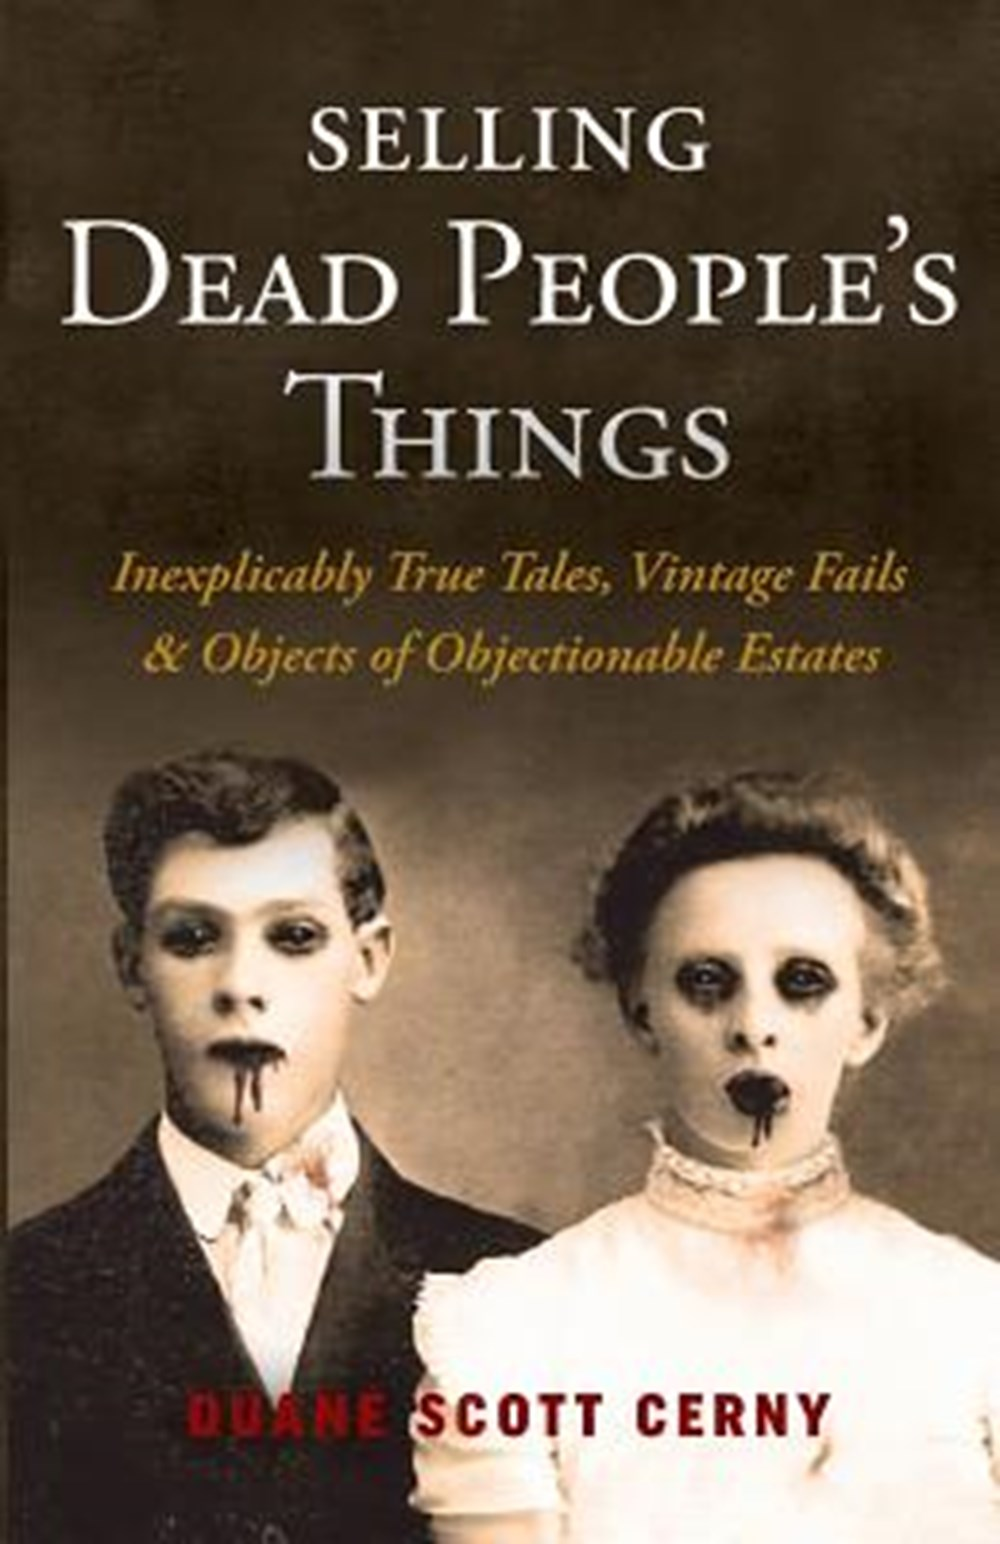 Selling Dead People's Things Inexplicably True Tales, Vintage Fails & Objects of Objectionable Estat